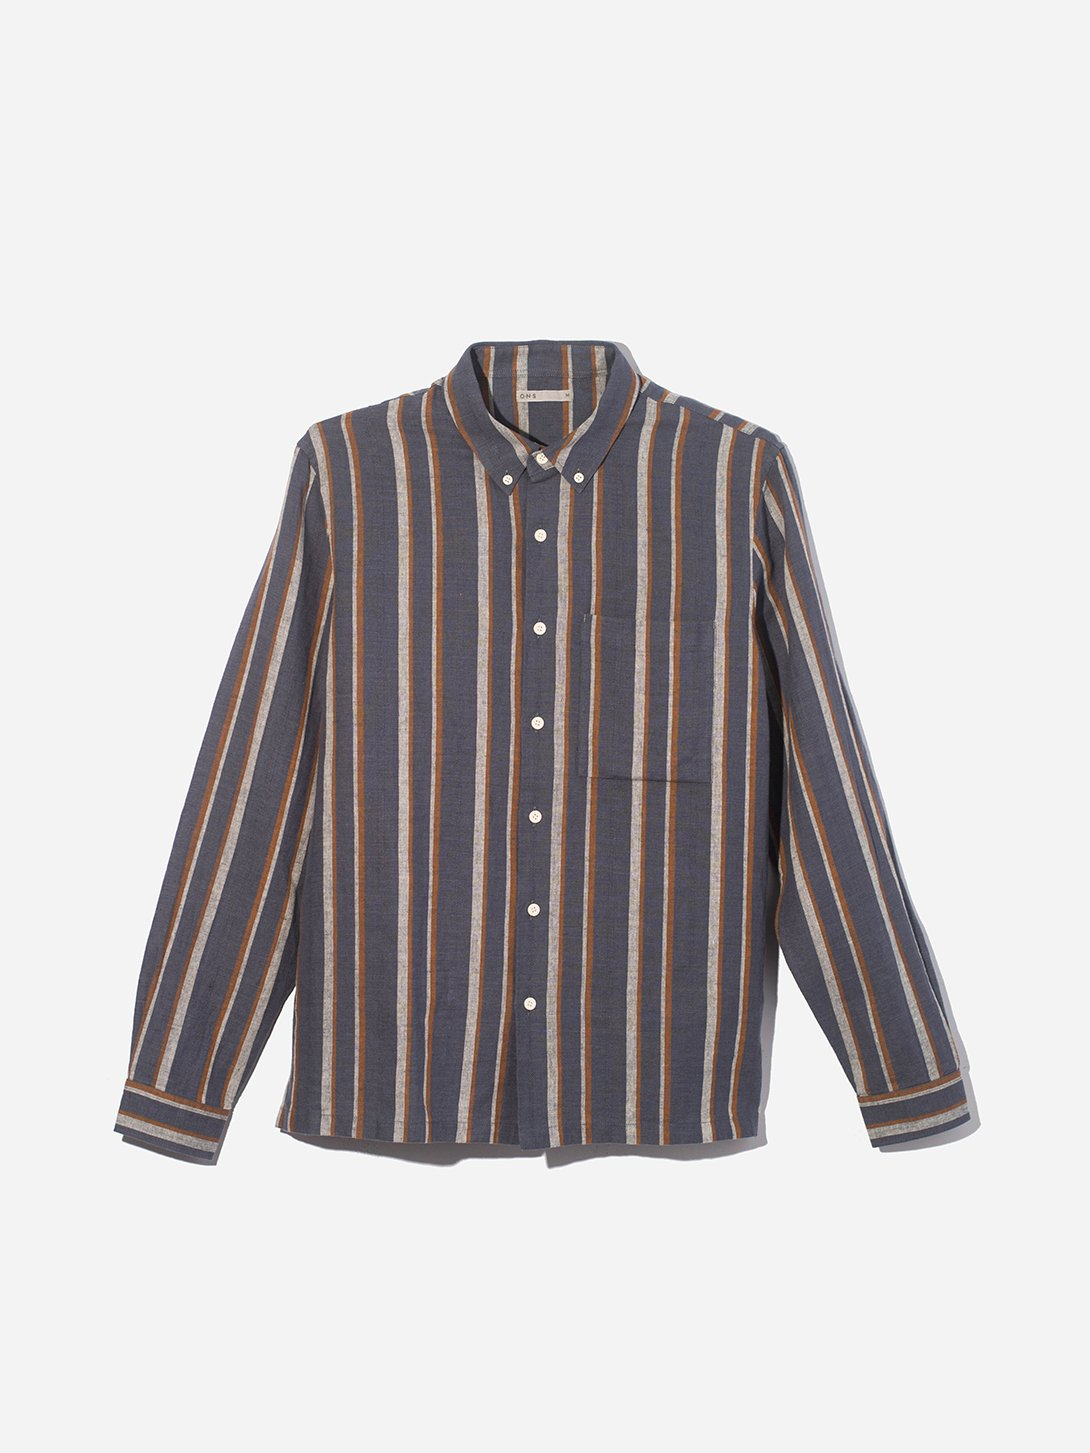 BLUE STRIPE button down shirt for men vance stripe linen cotton shirt ons clothing